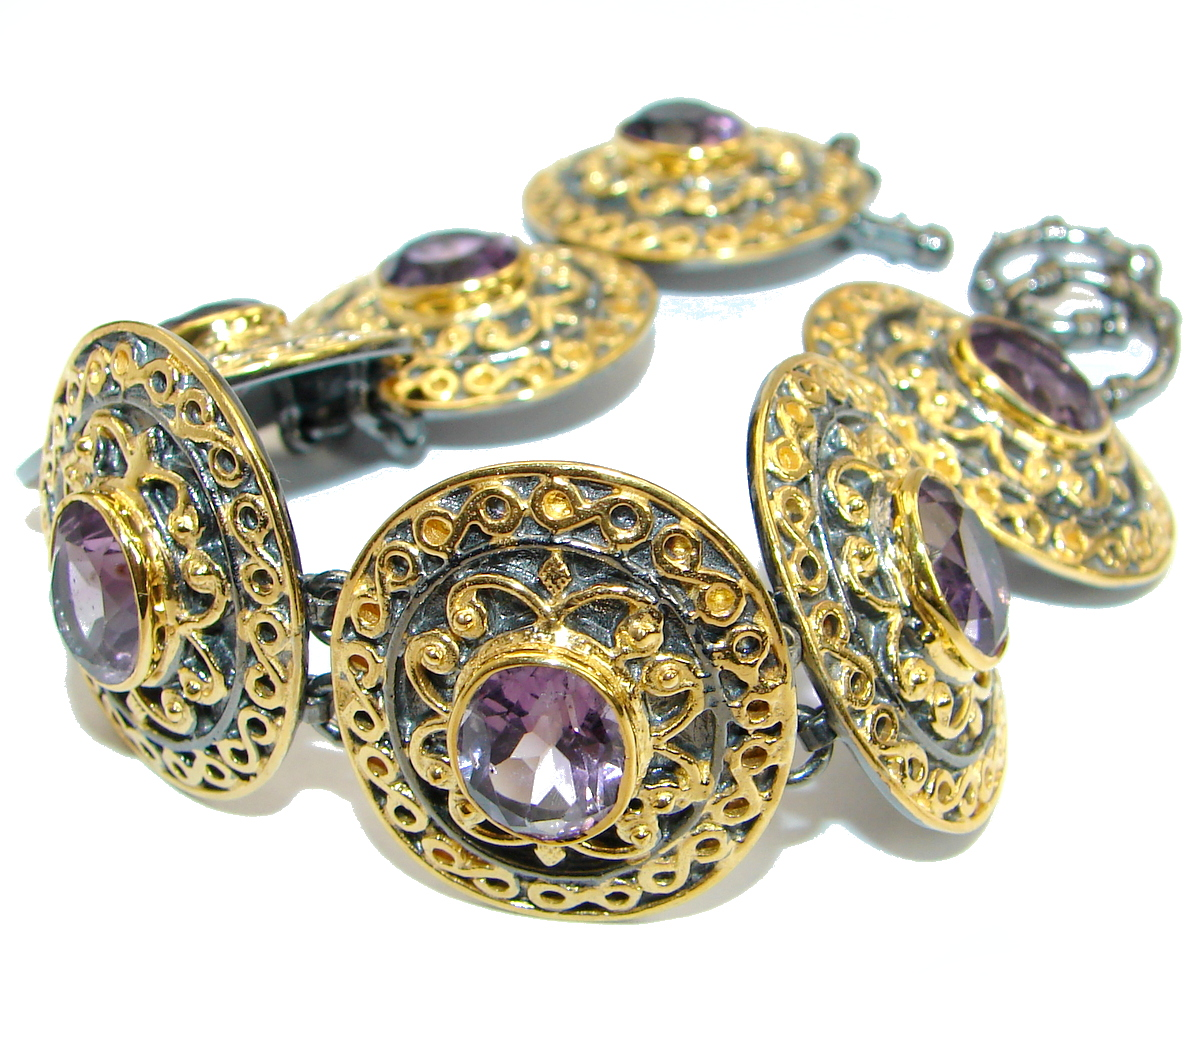 Real Treasure Genuine Amethyst 14K Gold over .925 Sterling Silver Bracelet / Cuff